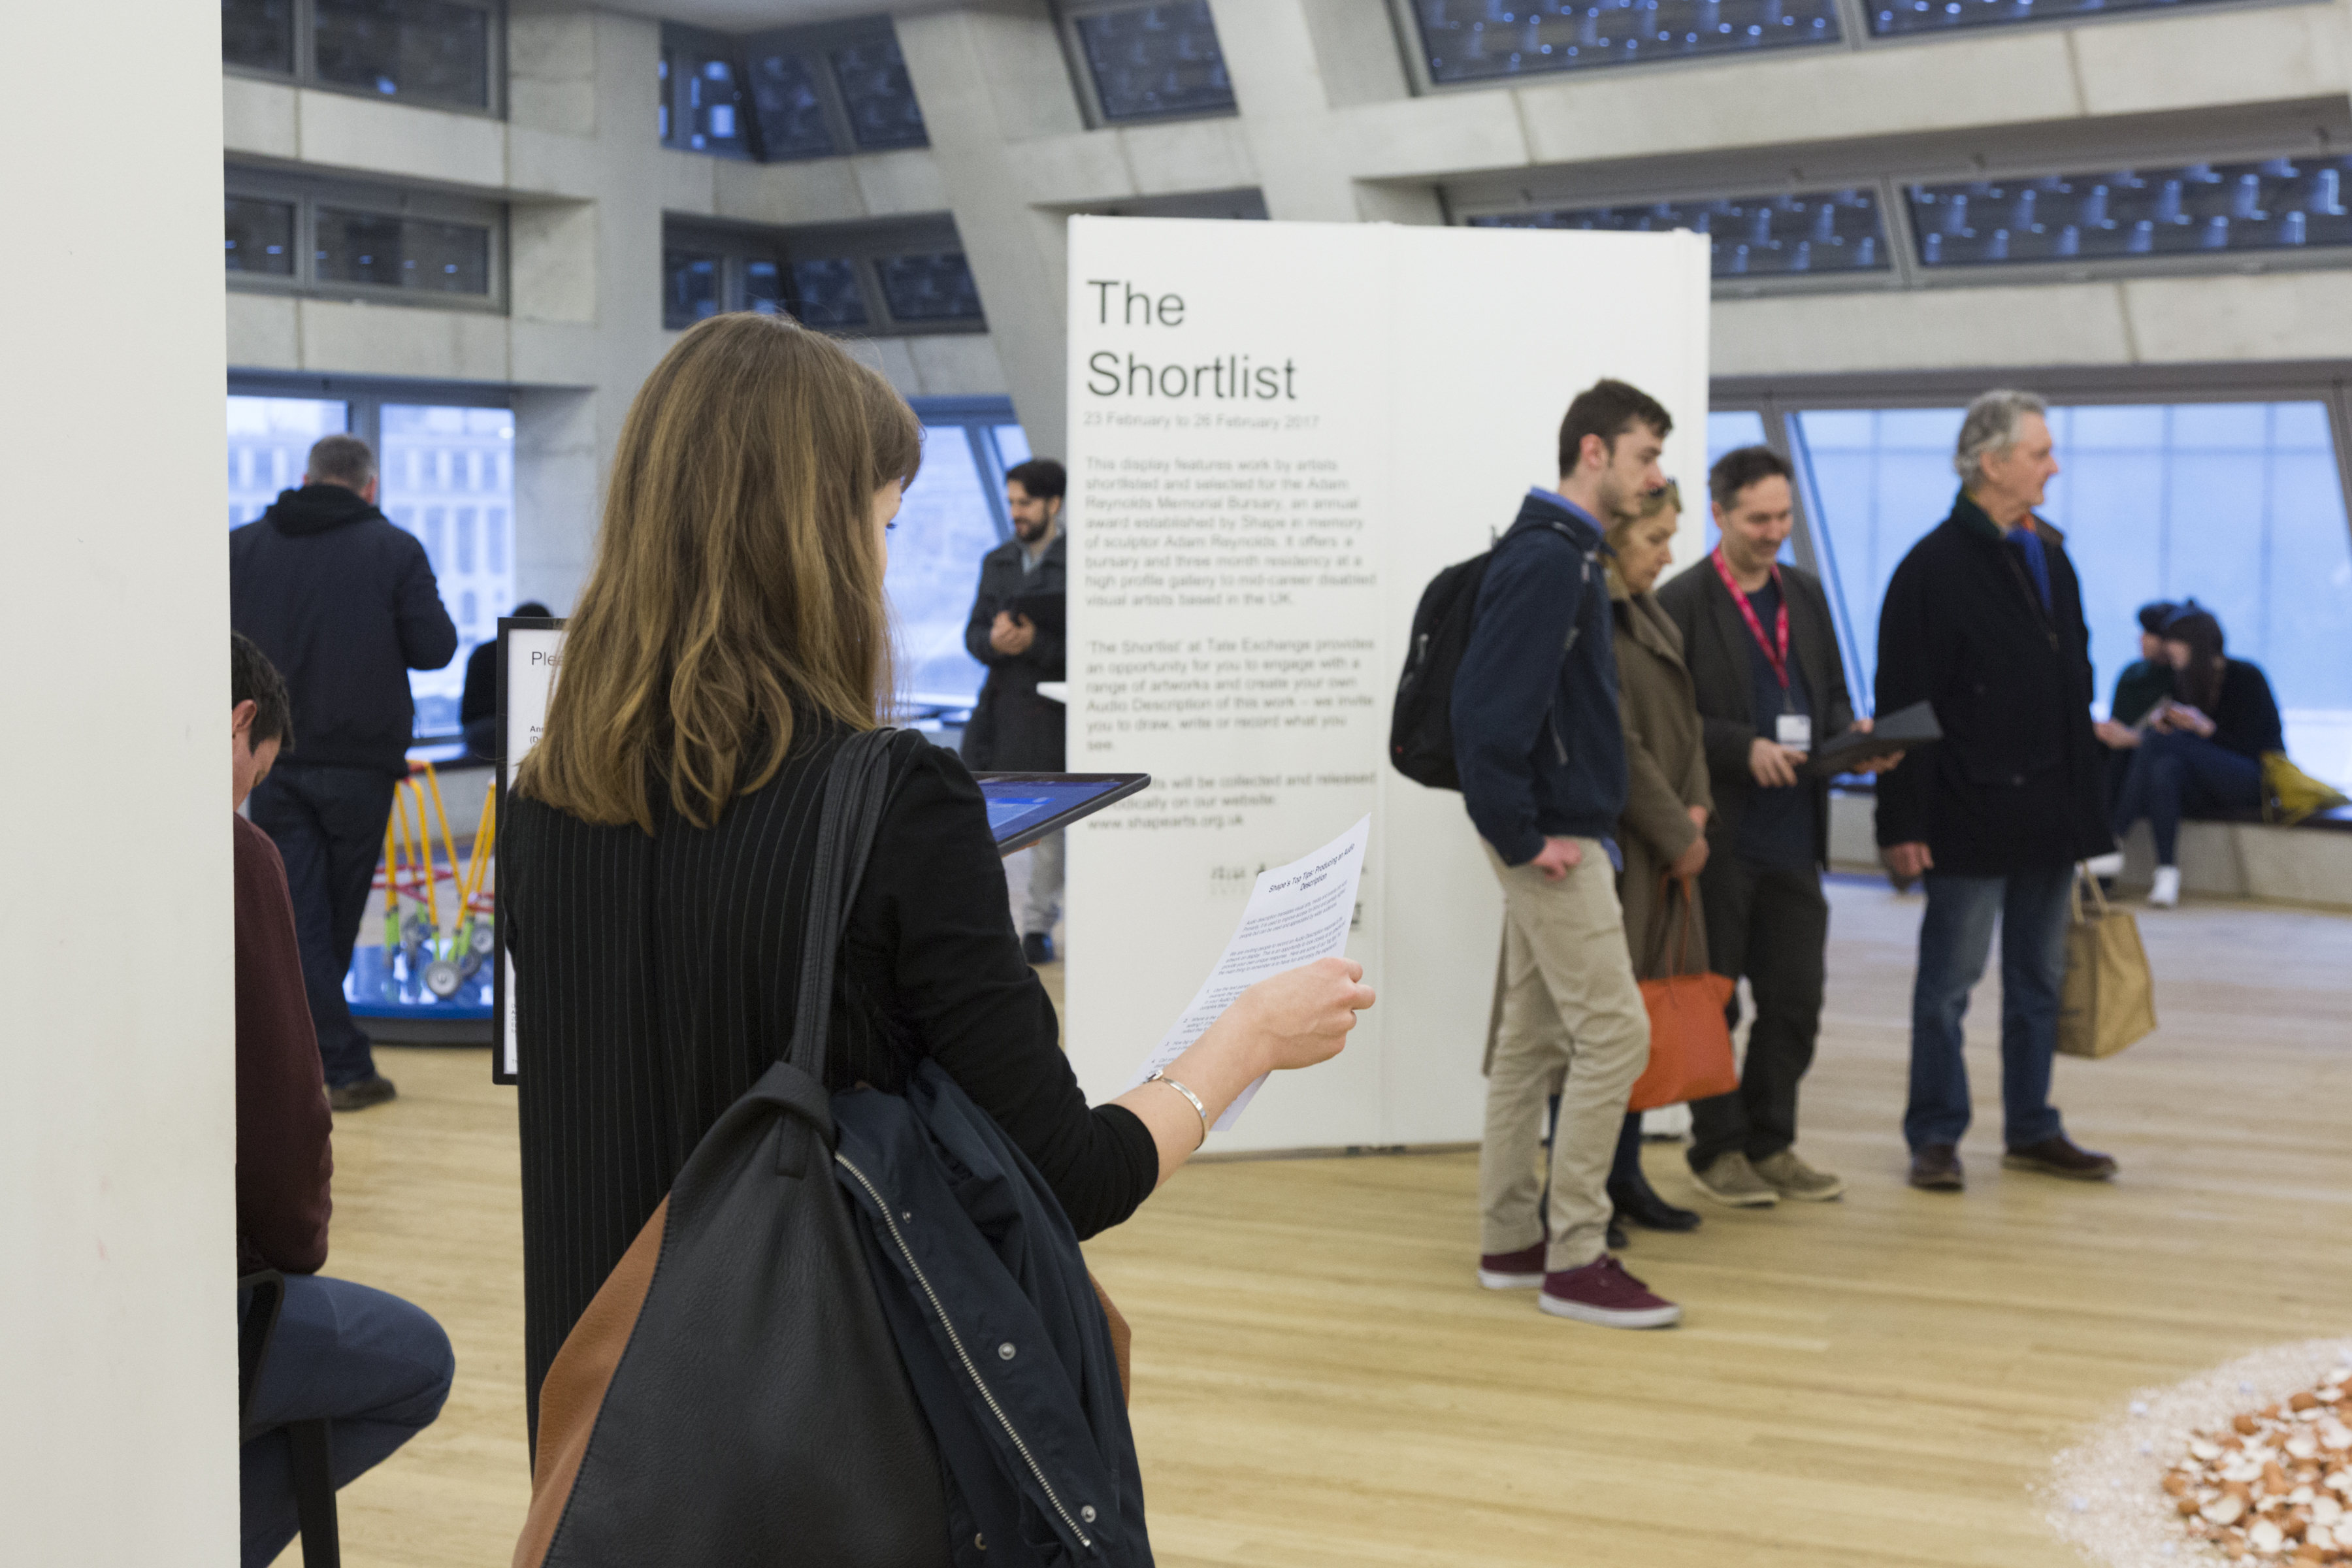 people looking at the Shortlist art disaply at Tate exchange, some of whom are making audio descriptions of the work on ipads